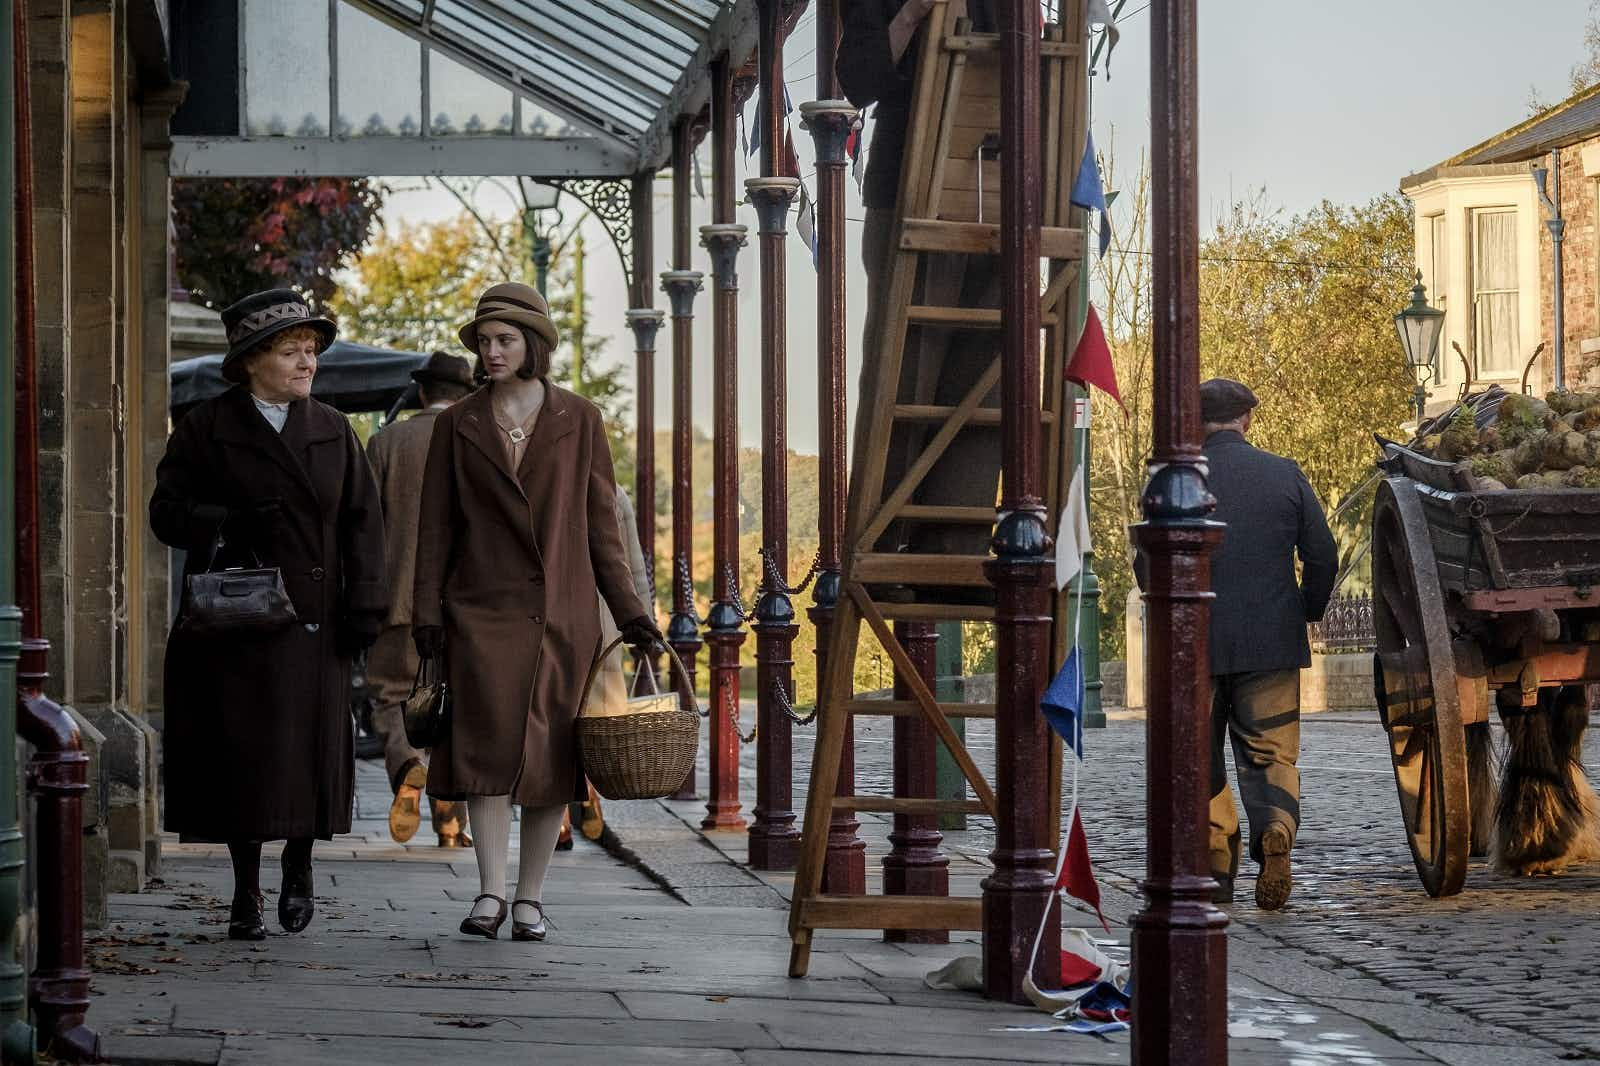 Carson strides away from the great house of Downton Abbey © 2019 FOCUS FEATURES LLC. ALL RIGHTS RESERVED